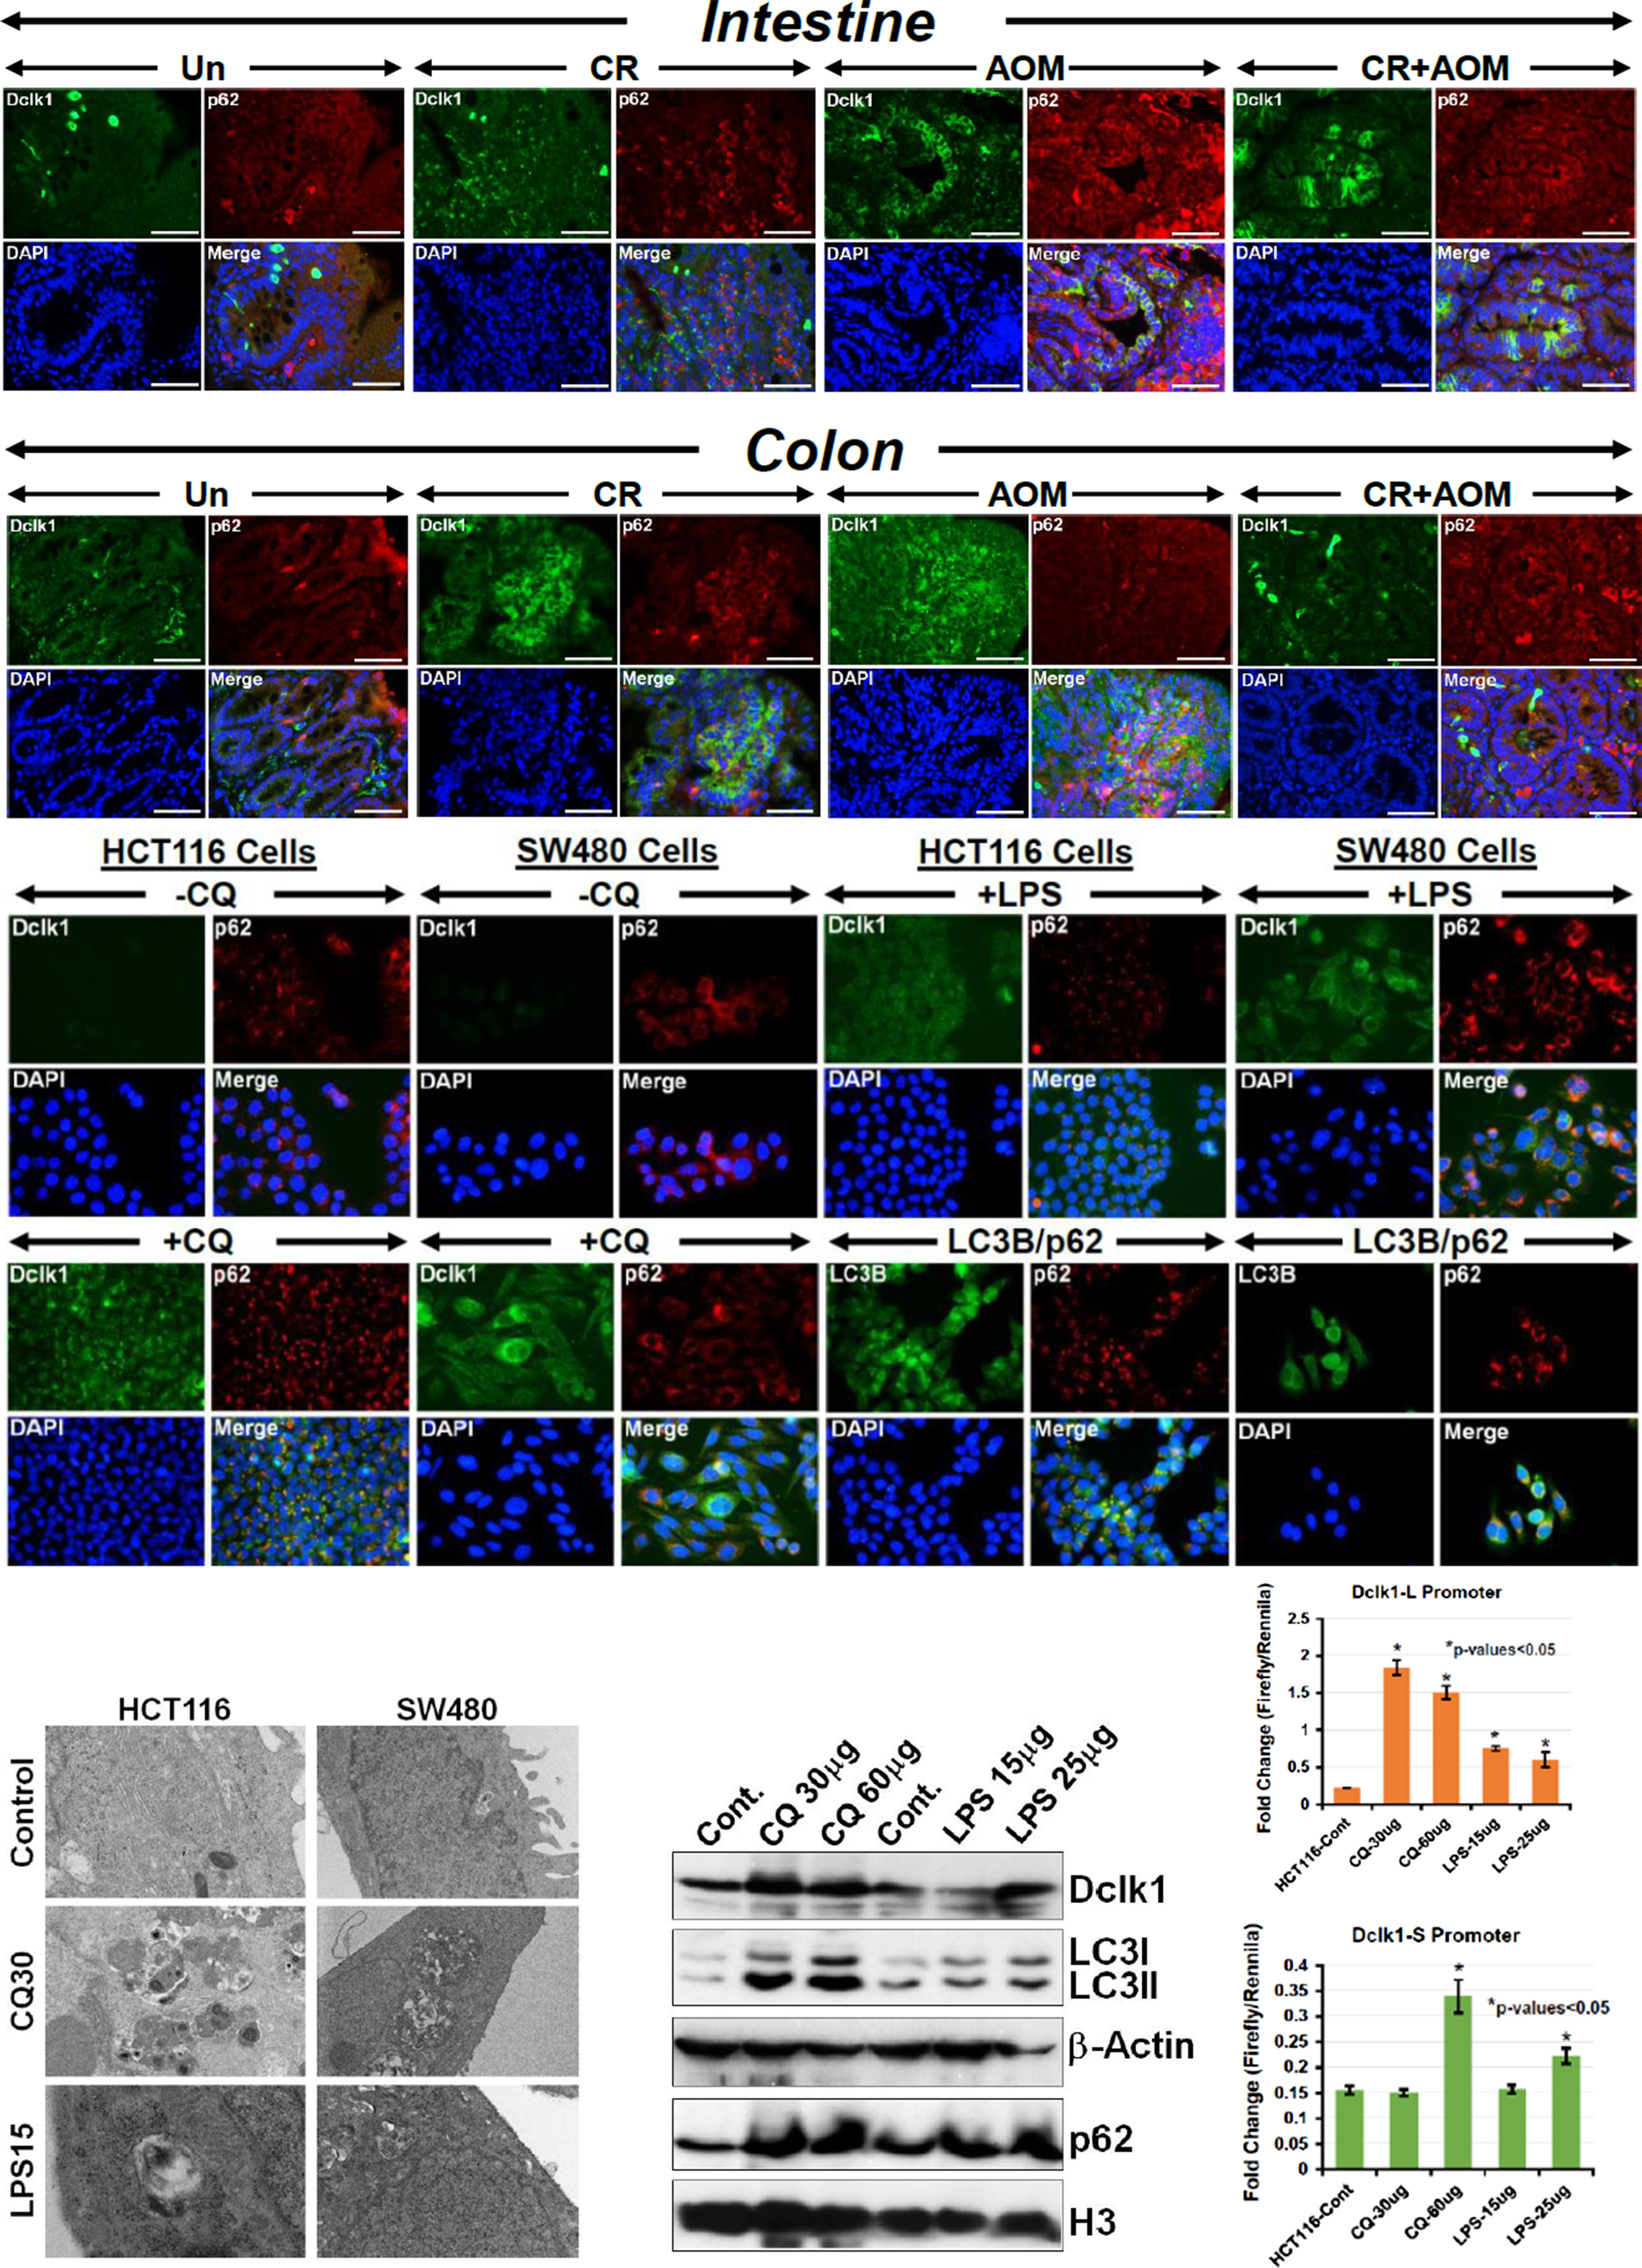 Oncotarget | Co-localization of autophagy-related protein p62 with